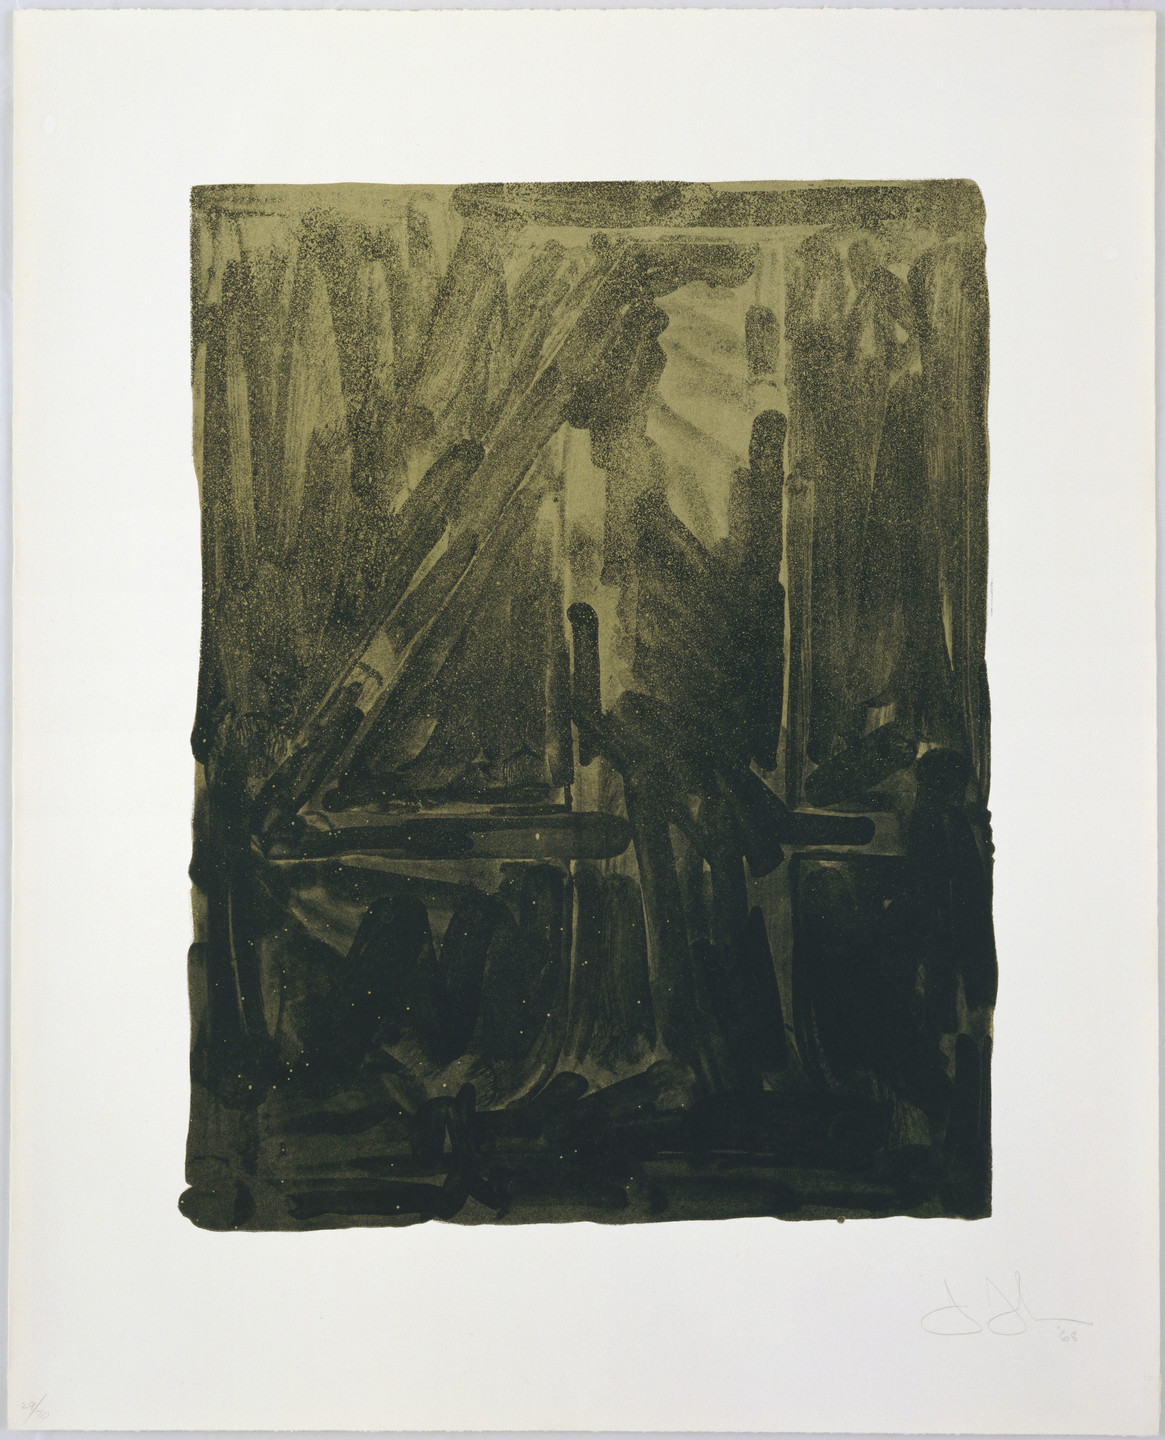 Jasper Johns. Figure 4 from Black Numeral Series. 1968